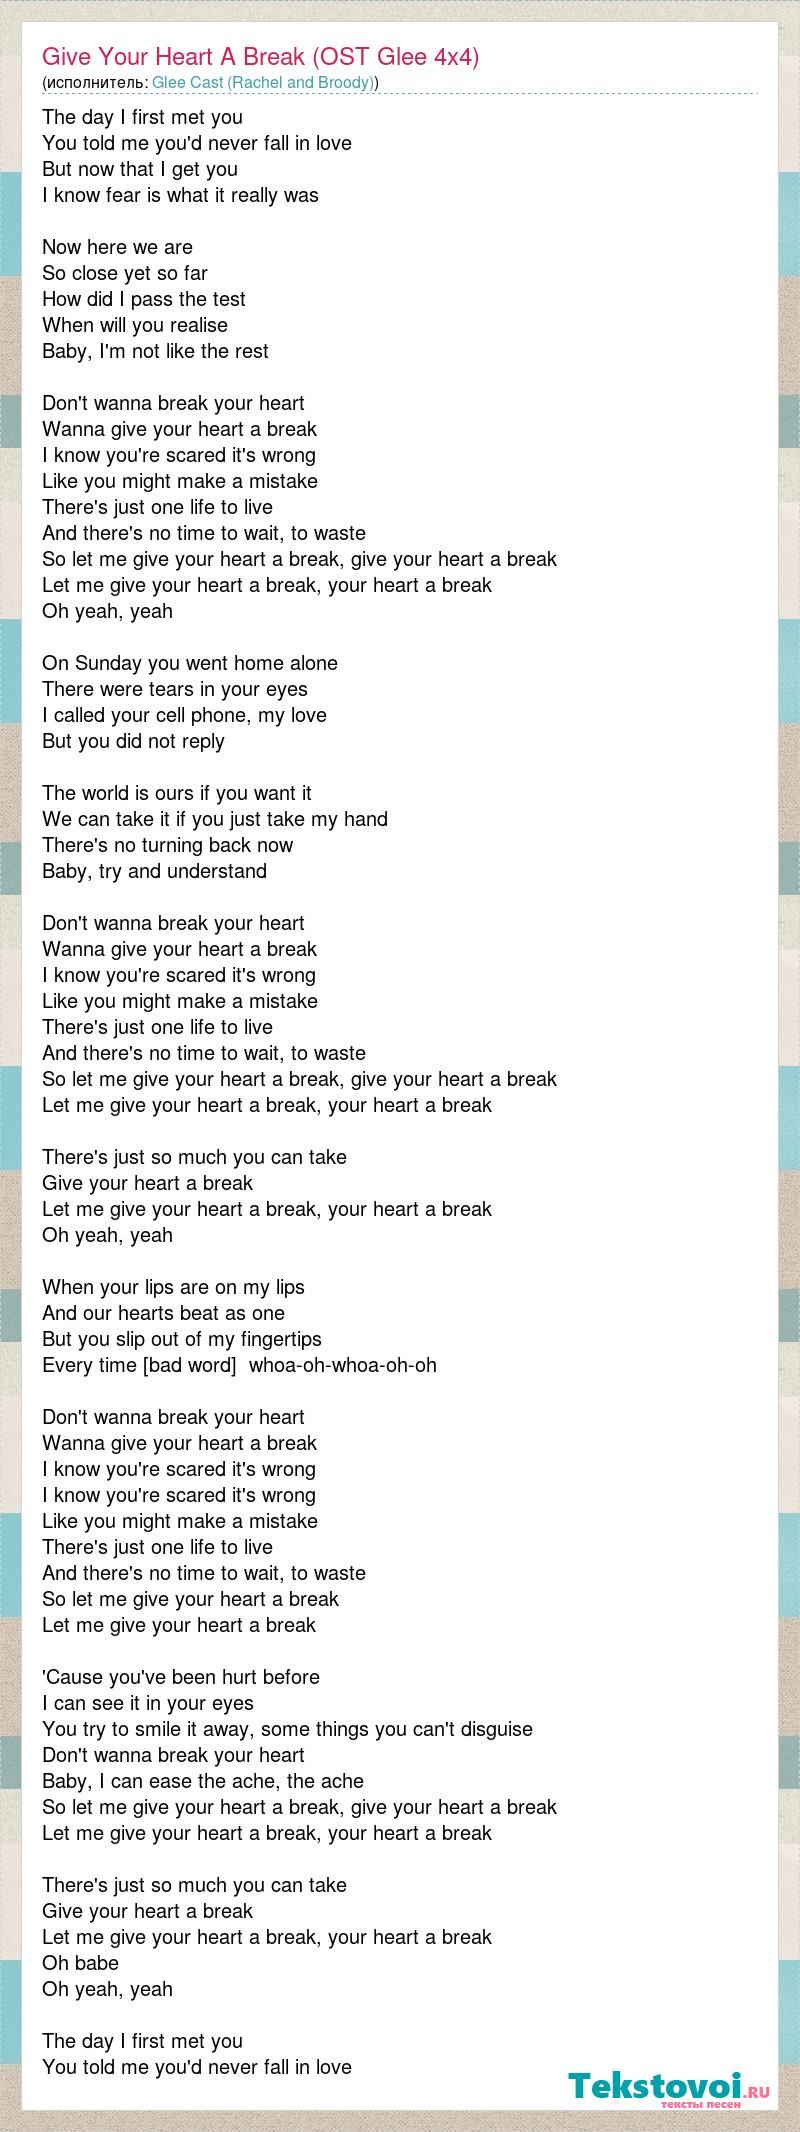 Glee Cast (Rachel and Broody): Give Your Heart A Break (OST